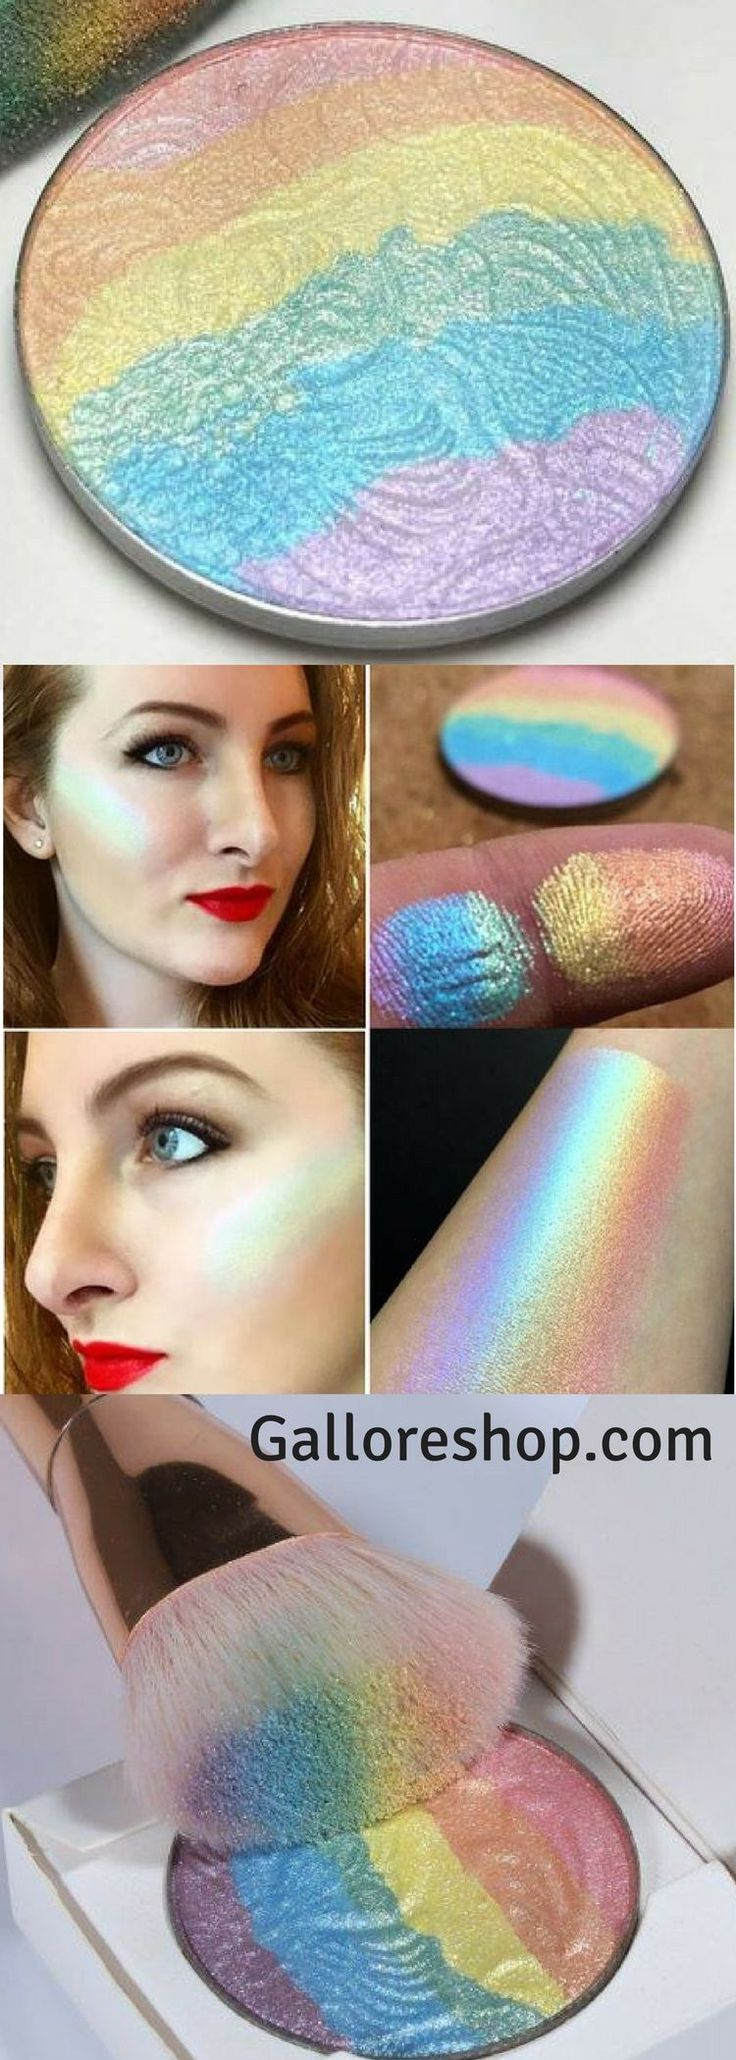 Highlight your beautiful features with this rainbow eyeshadow makeup bronzer palette rainbow makeup | rainbow makeup eyeshadows | rainbow makeup pride | rainbow makeup halloween | rainbow makeup looks | Rainbow makeup | Rainbow makeup | Rainbow Makeup Tutorials, Tips, and Ideas. |makeup palette | makeup palette organization | makeup palette best |makeup | makeup ideas #makeup #bronzer #makeupartist #beauty #rainbow #makeupgoals #trends